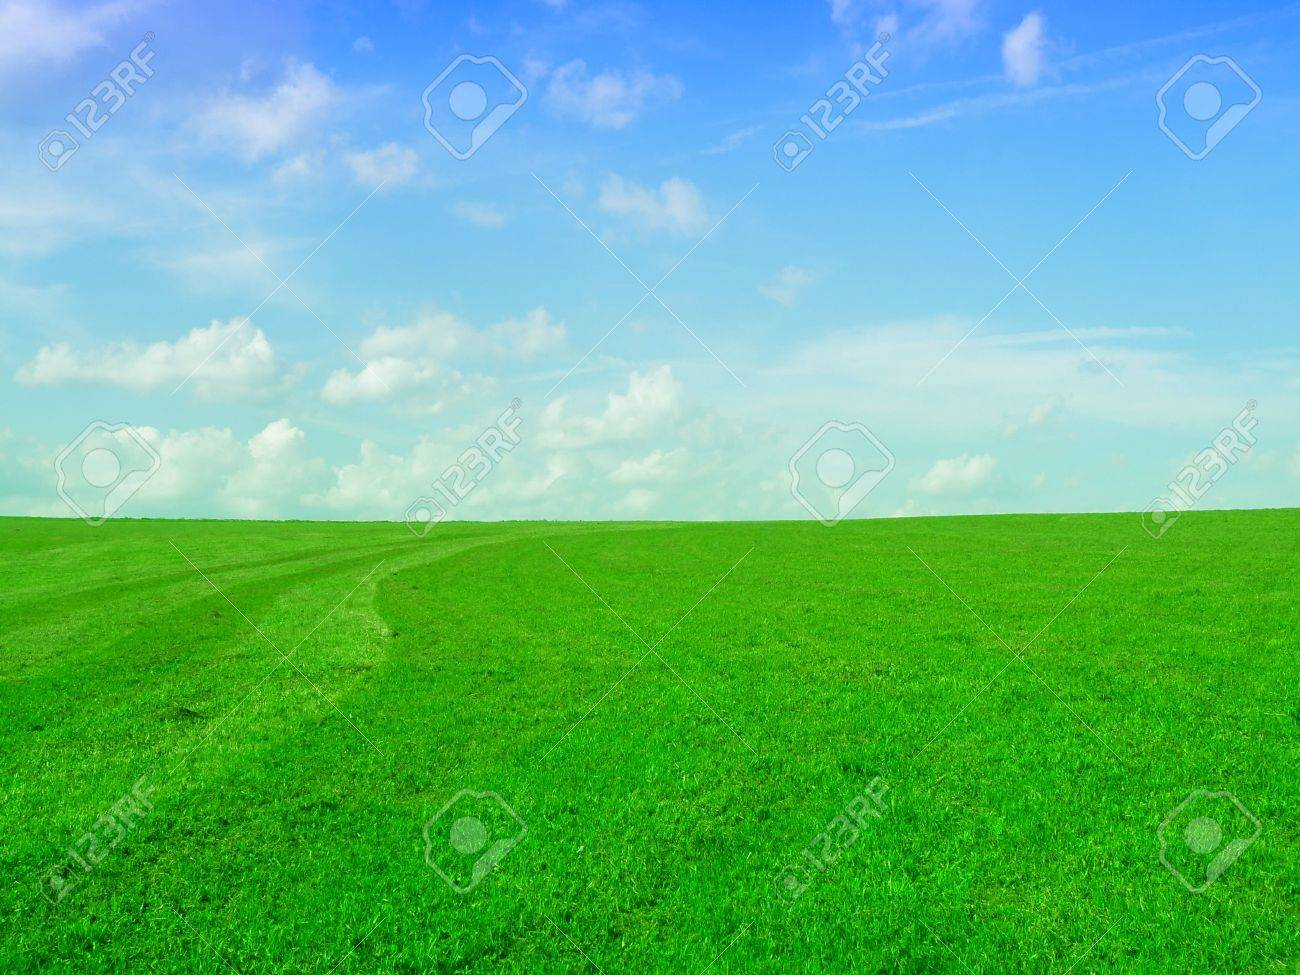 very nice image - green field and blue sky Stock Photo - 5357856